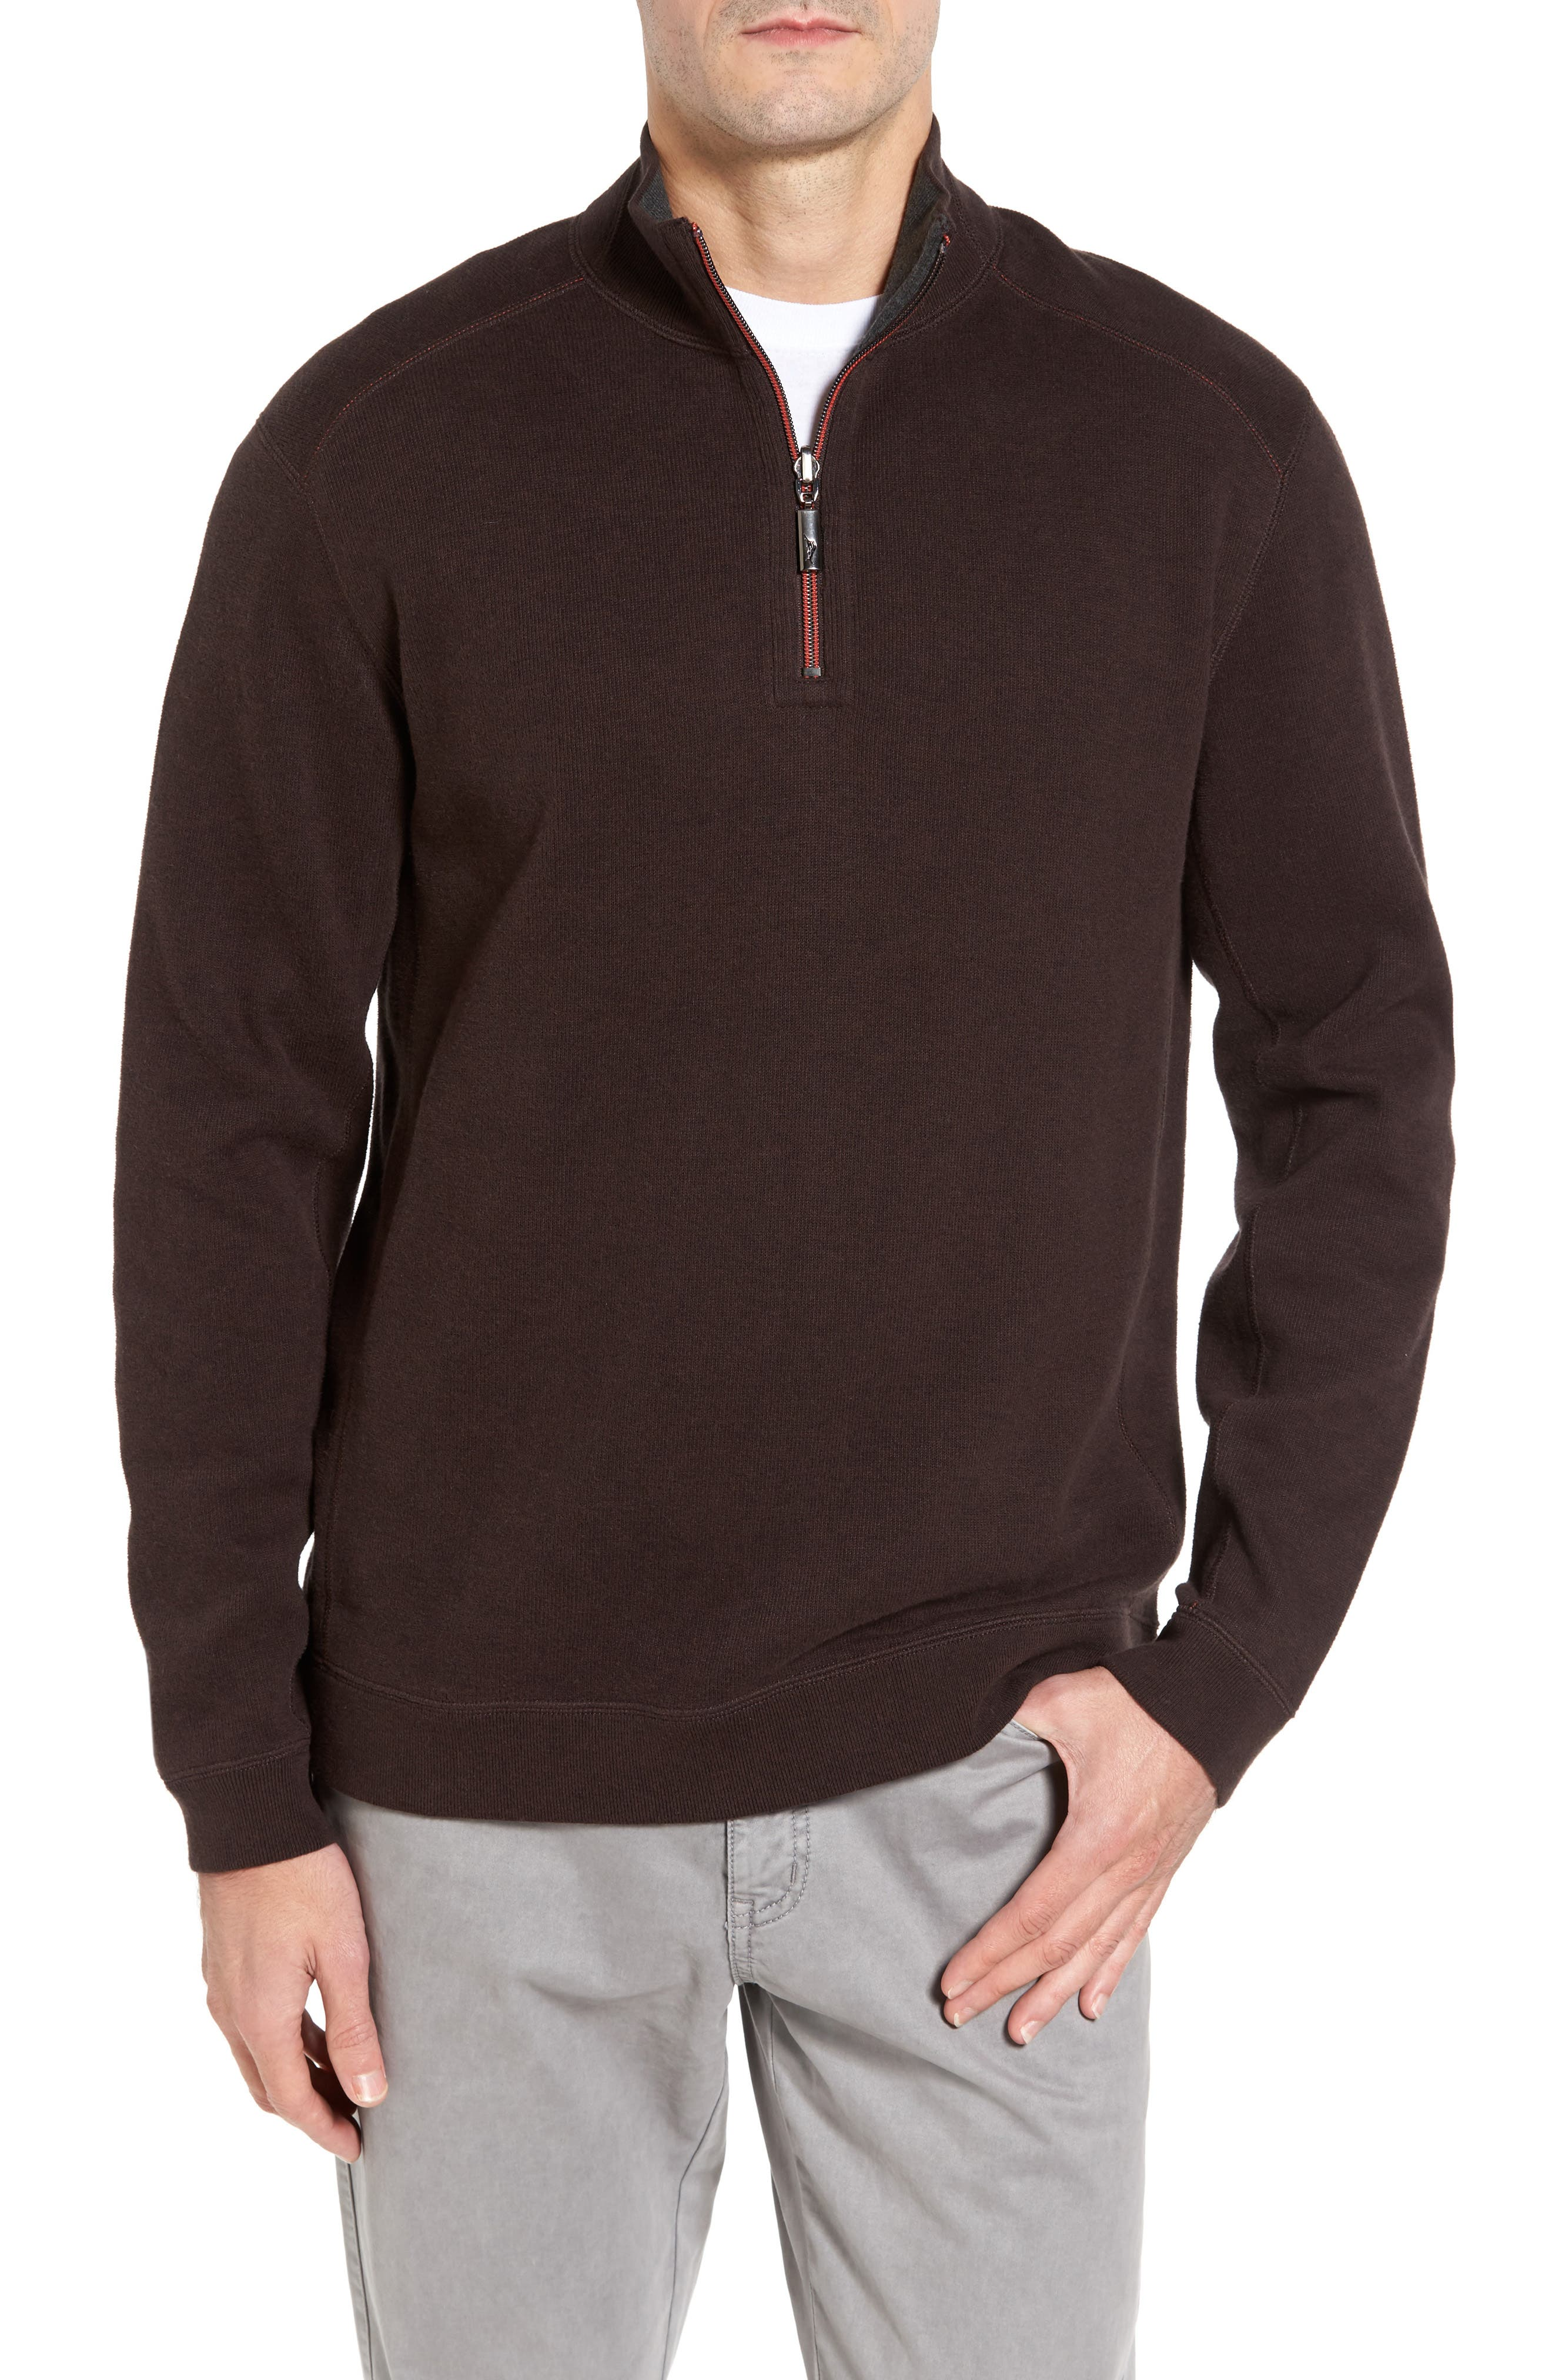 Main Image - Tommy Bahama Flip Side Reversible Quarter Zip Twill Pullover